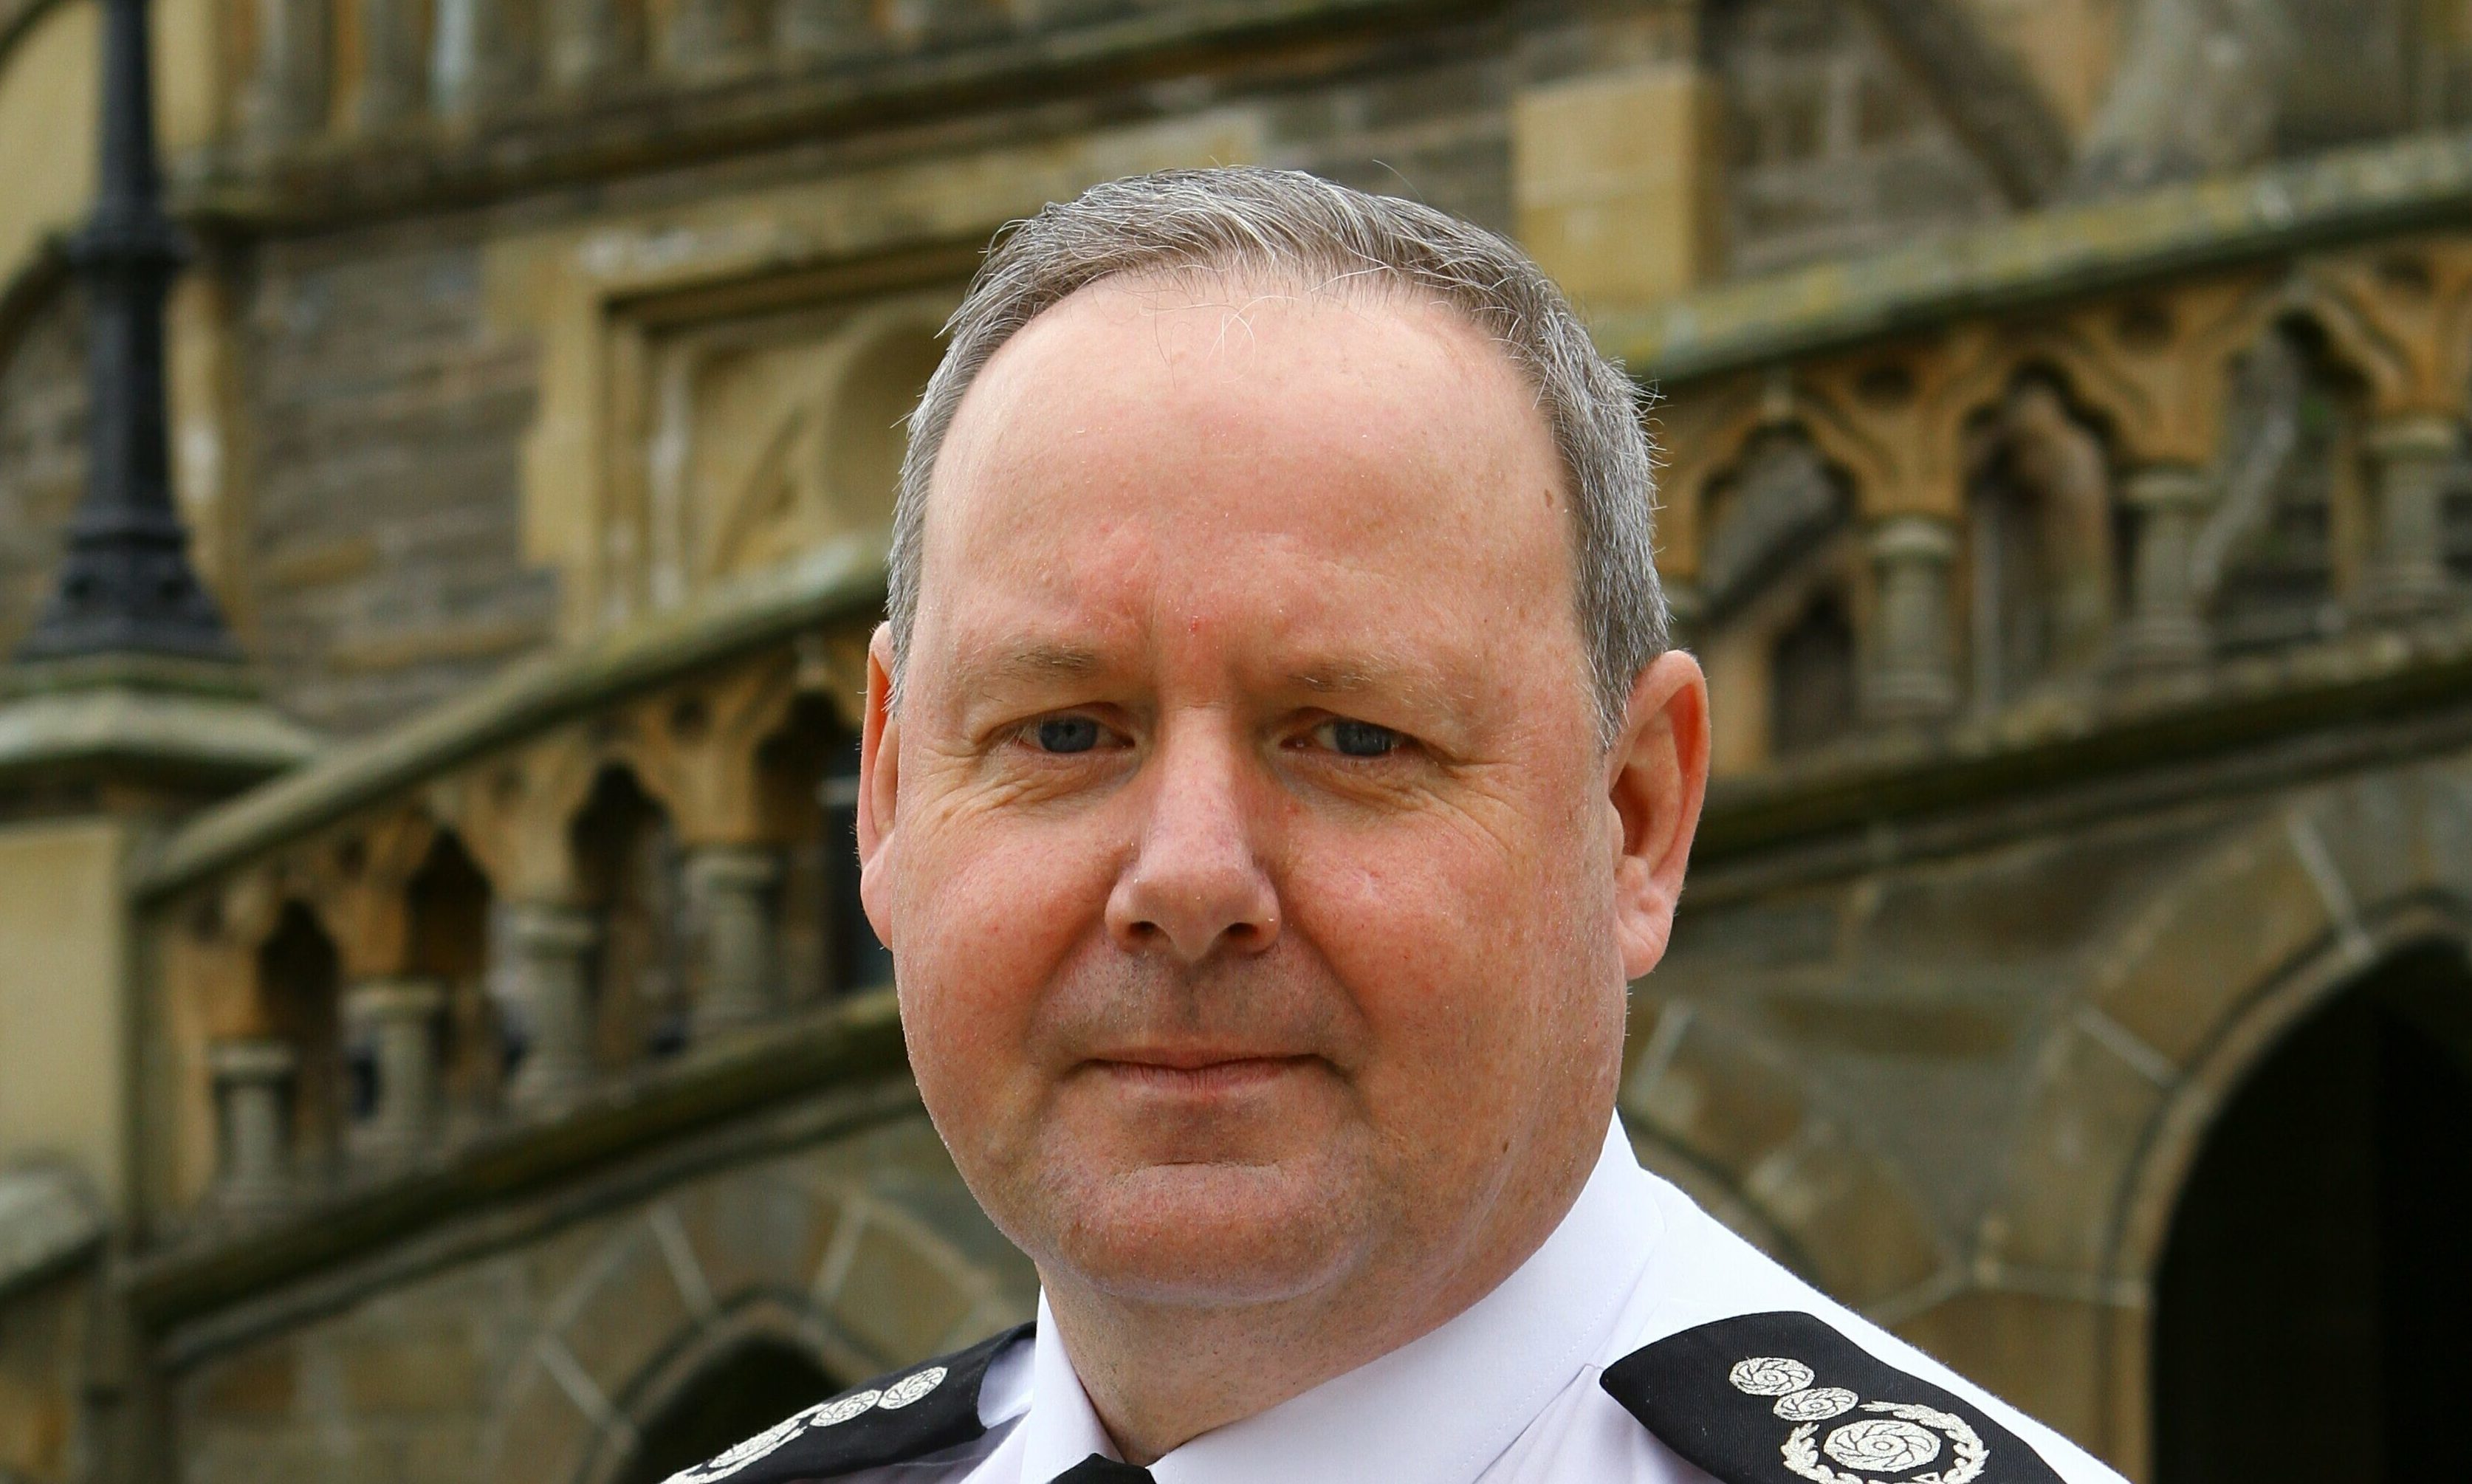 SFRS chief Alasdair Hay has ruled out any closures in Dundee